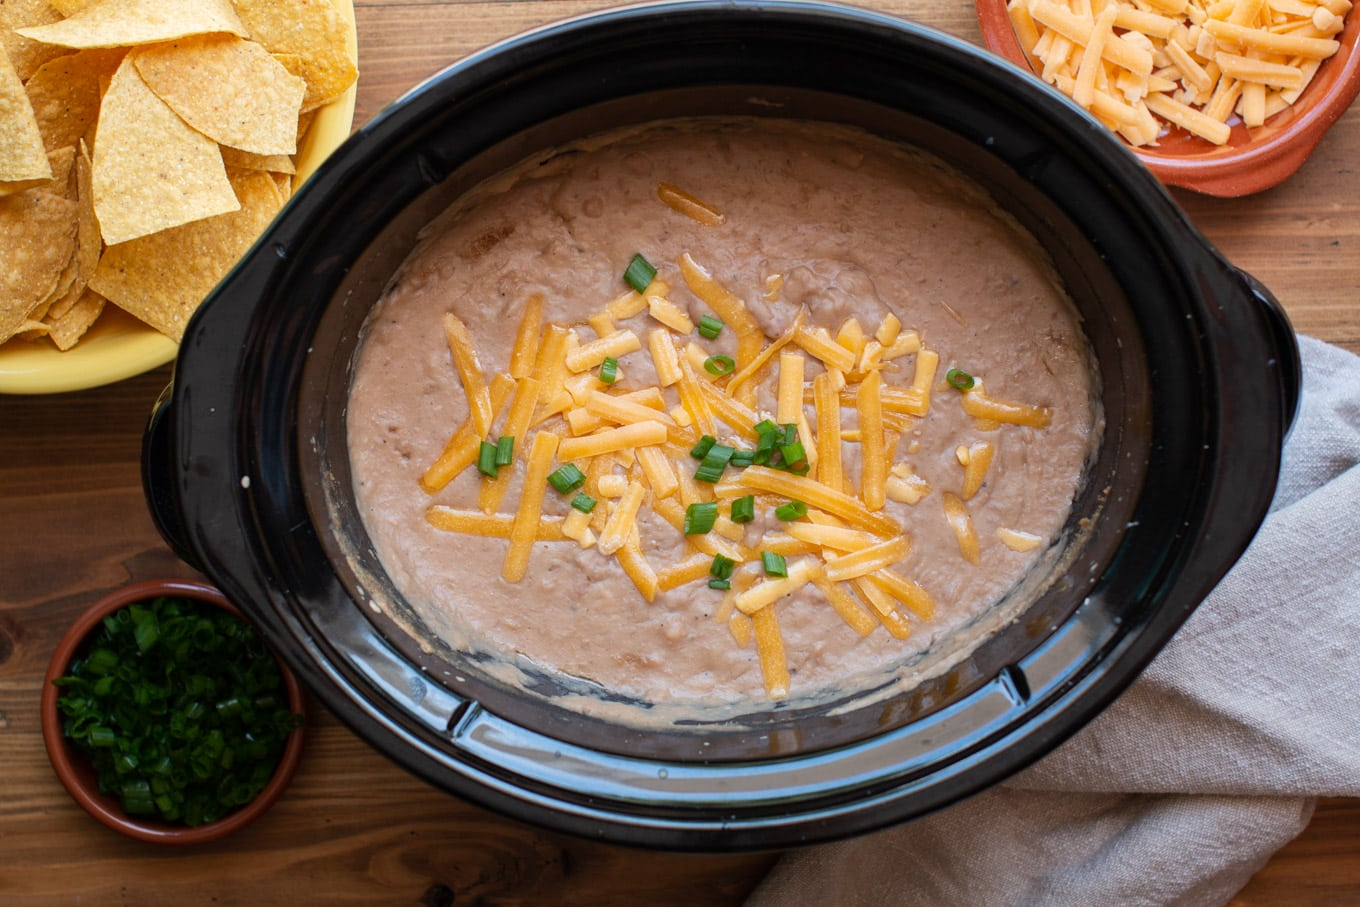 pureed pinto beans in a slow cooker with chips and cheese on the side.